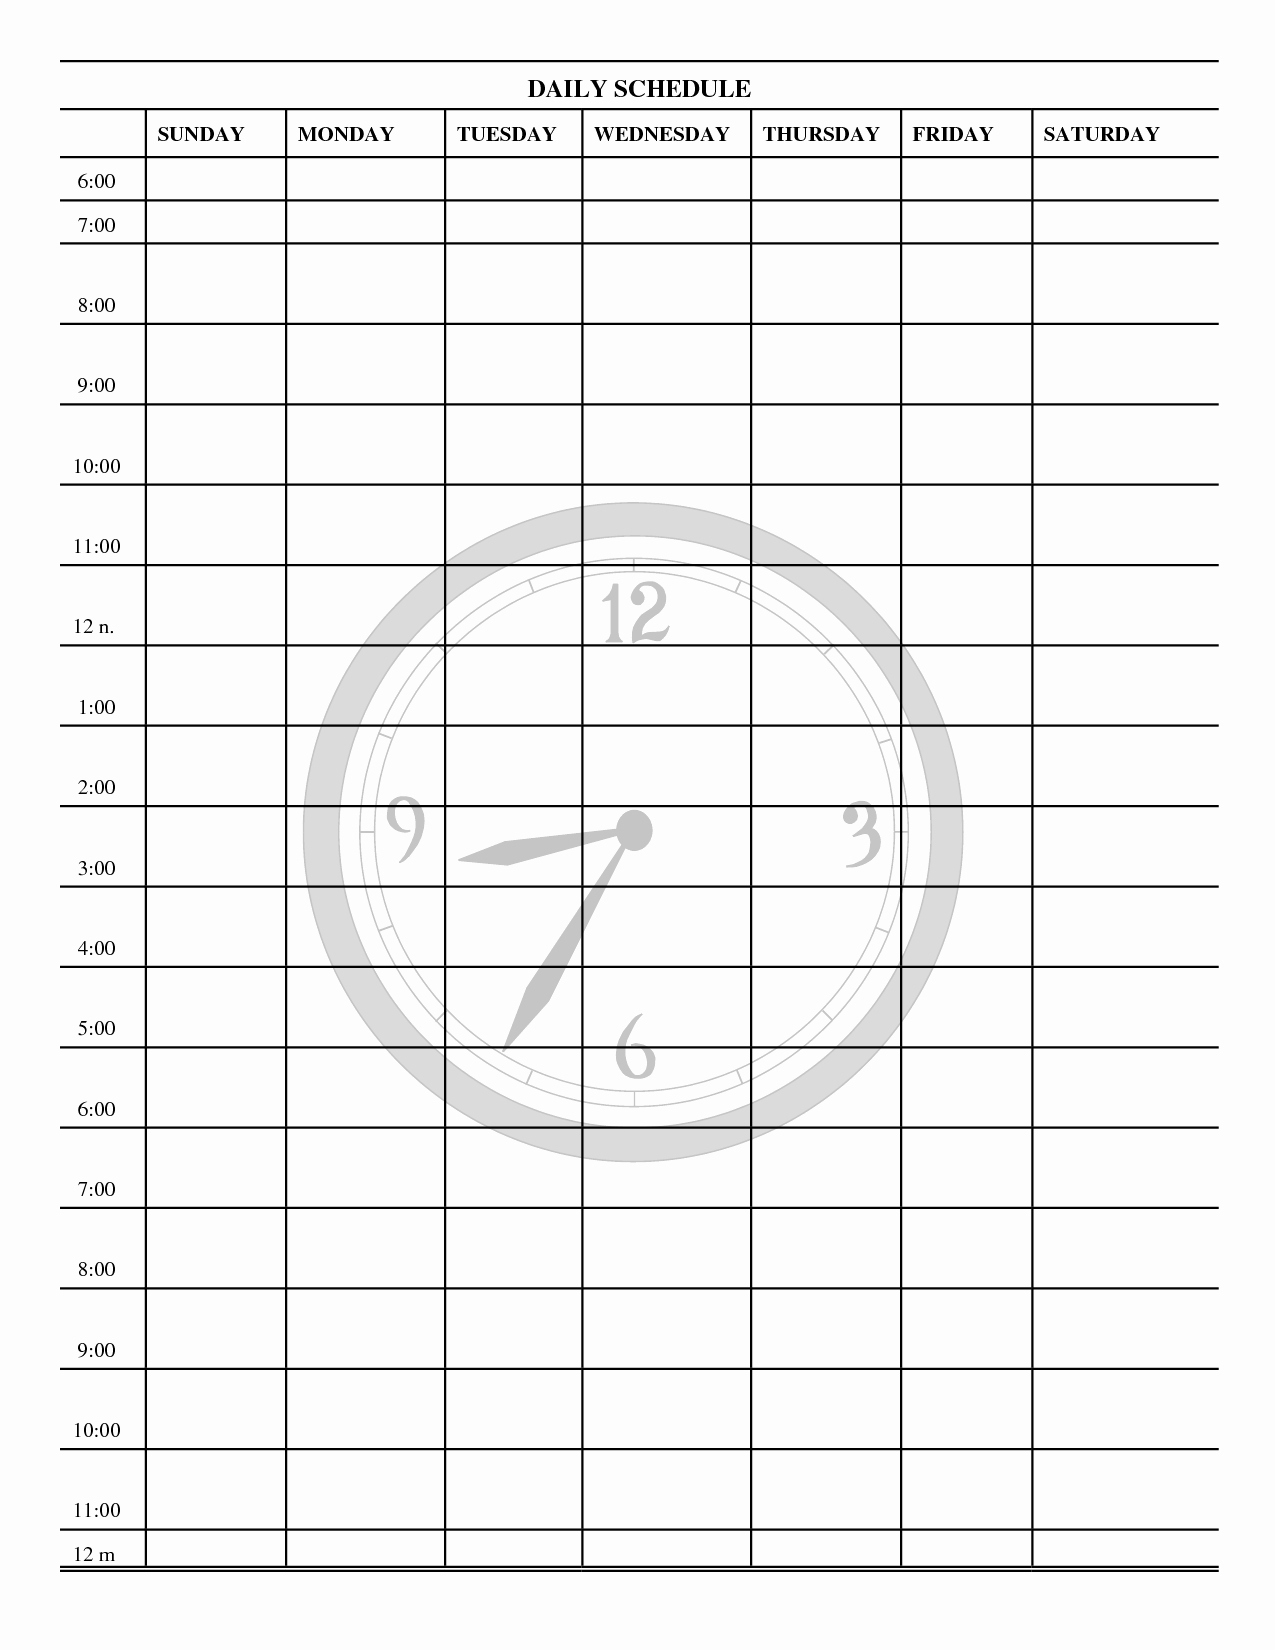 Blank Daily Schedule Template Lovely Template Printable Gallery Category Page 2